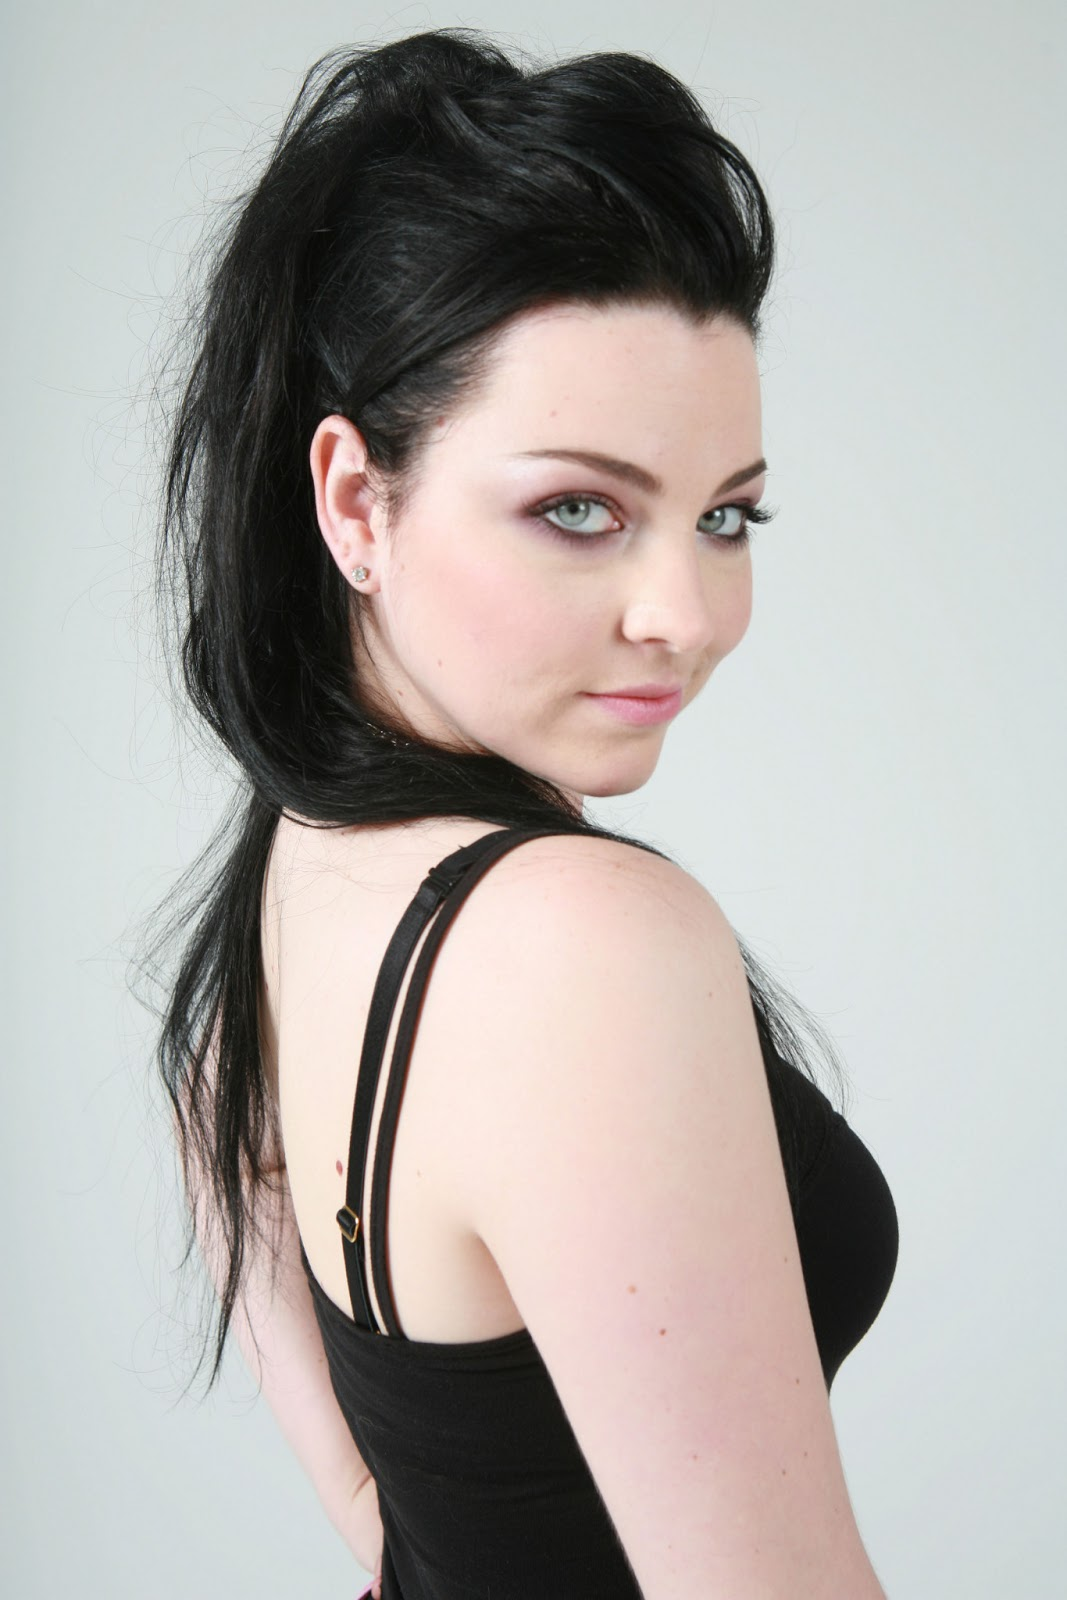 amy lee facebook official relationship